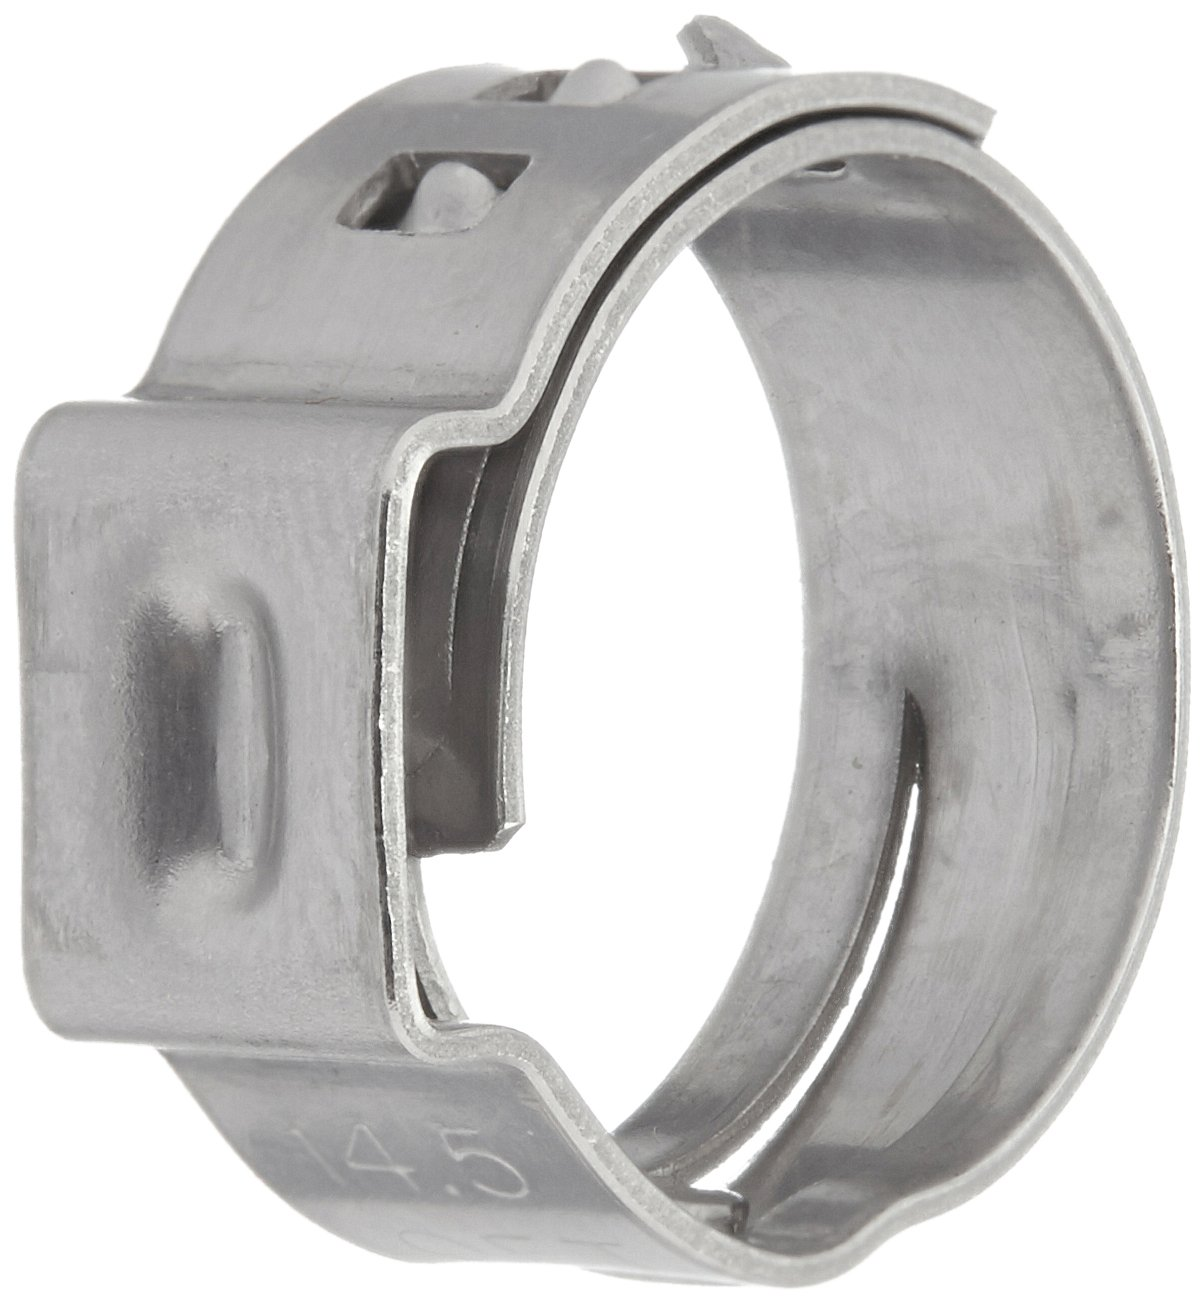 Oetiker 16700013 Stepless Ear Clamp, One Ear, Clamp ID Range 12 mm (Closed) - 14.5 mm (Open) (Pack of 50)